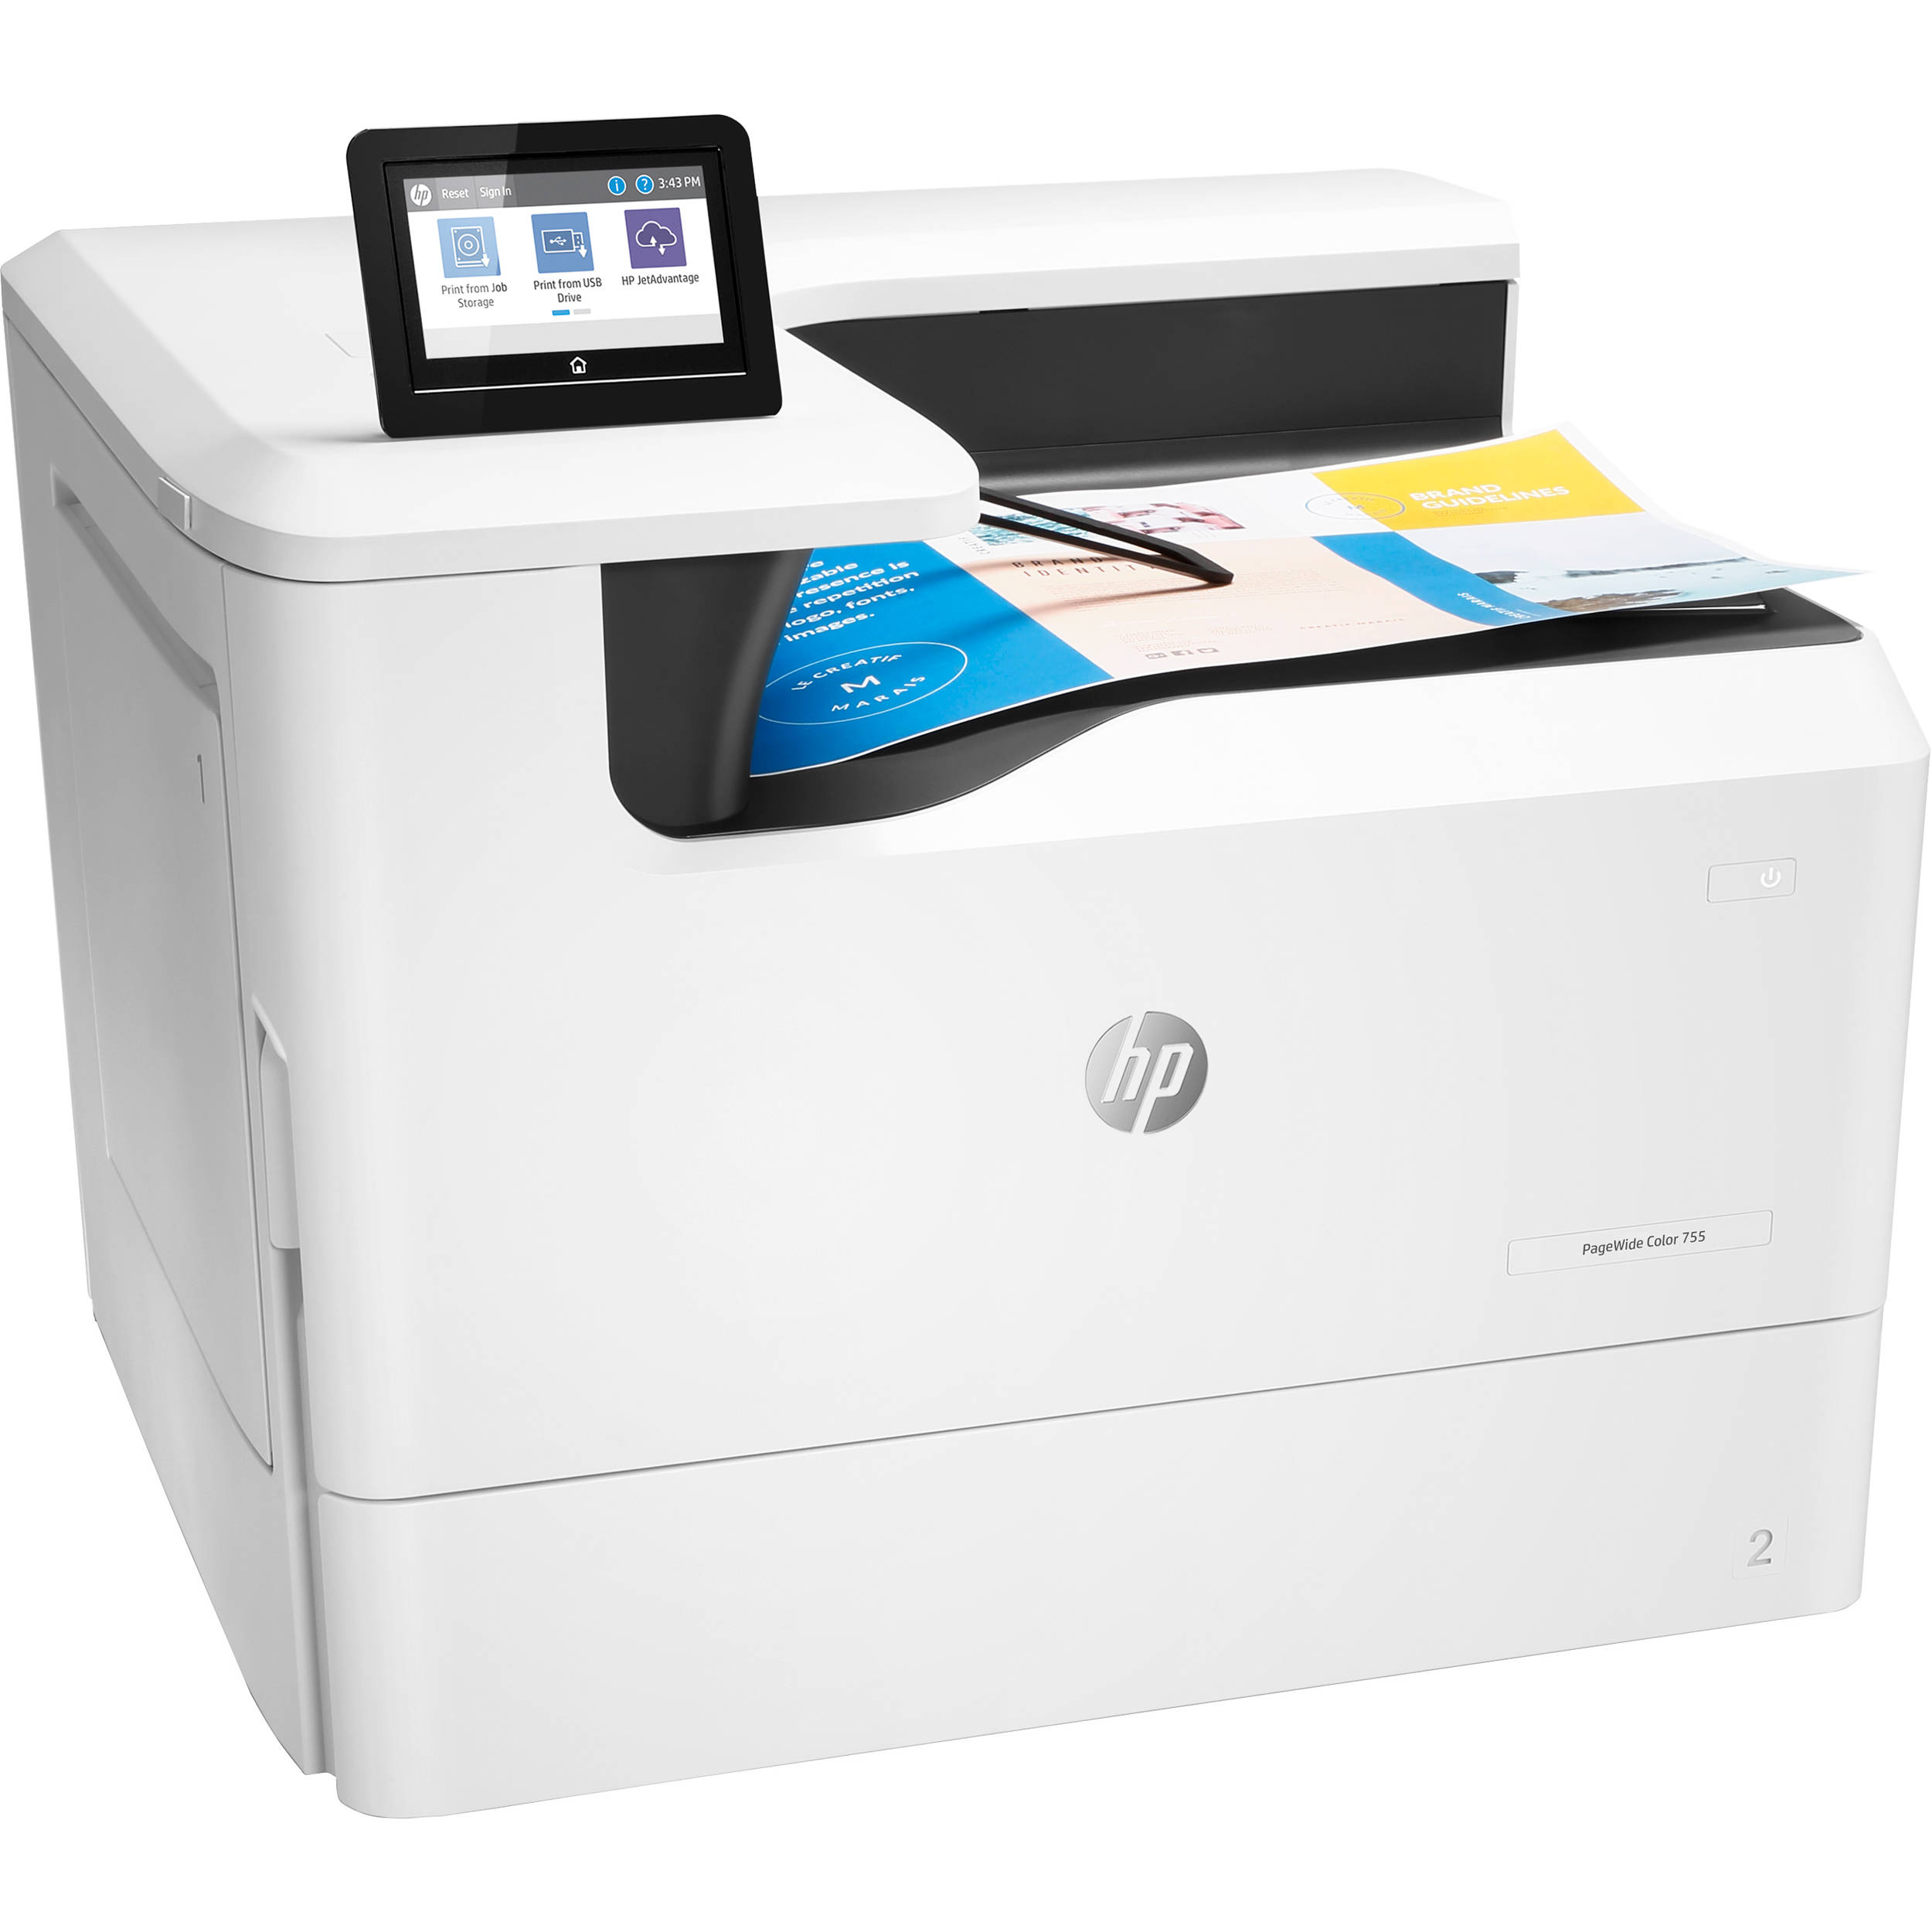 HP PageWide Color 755dn Color Laser Printer, Refurbished (4PZ47A)